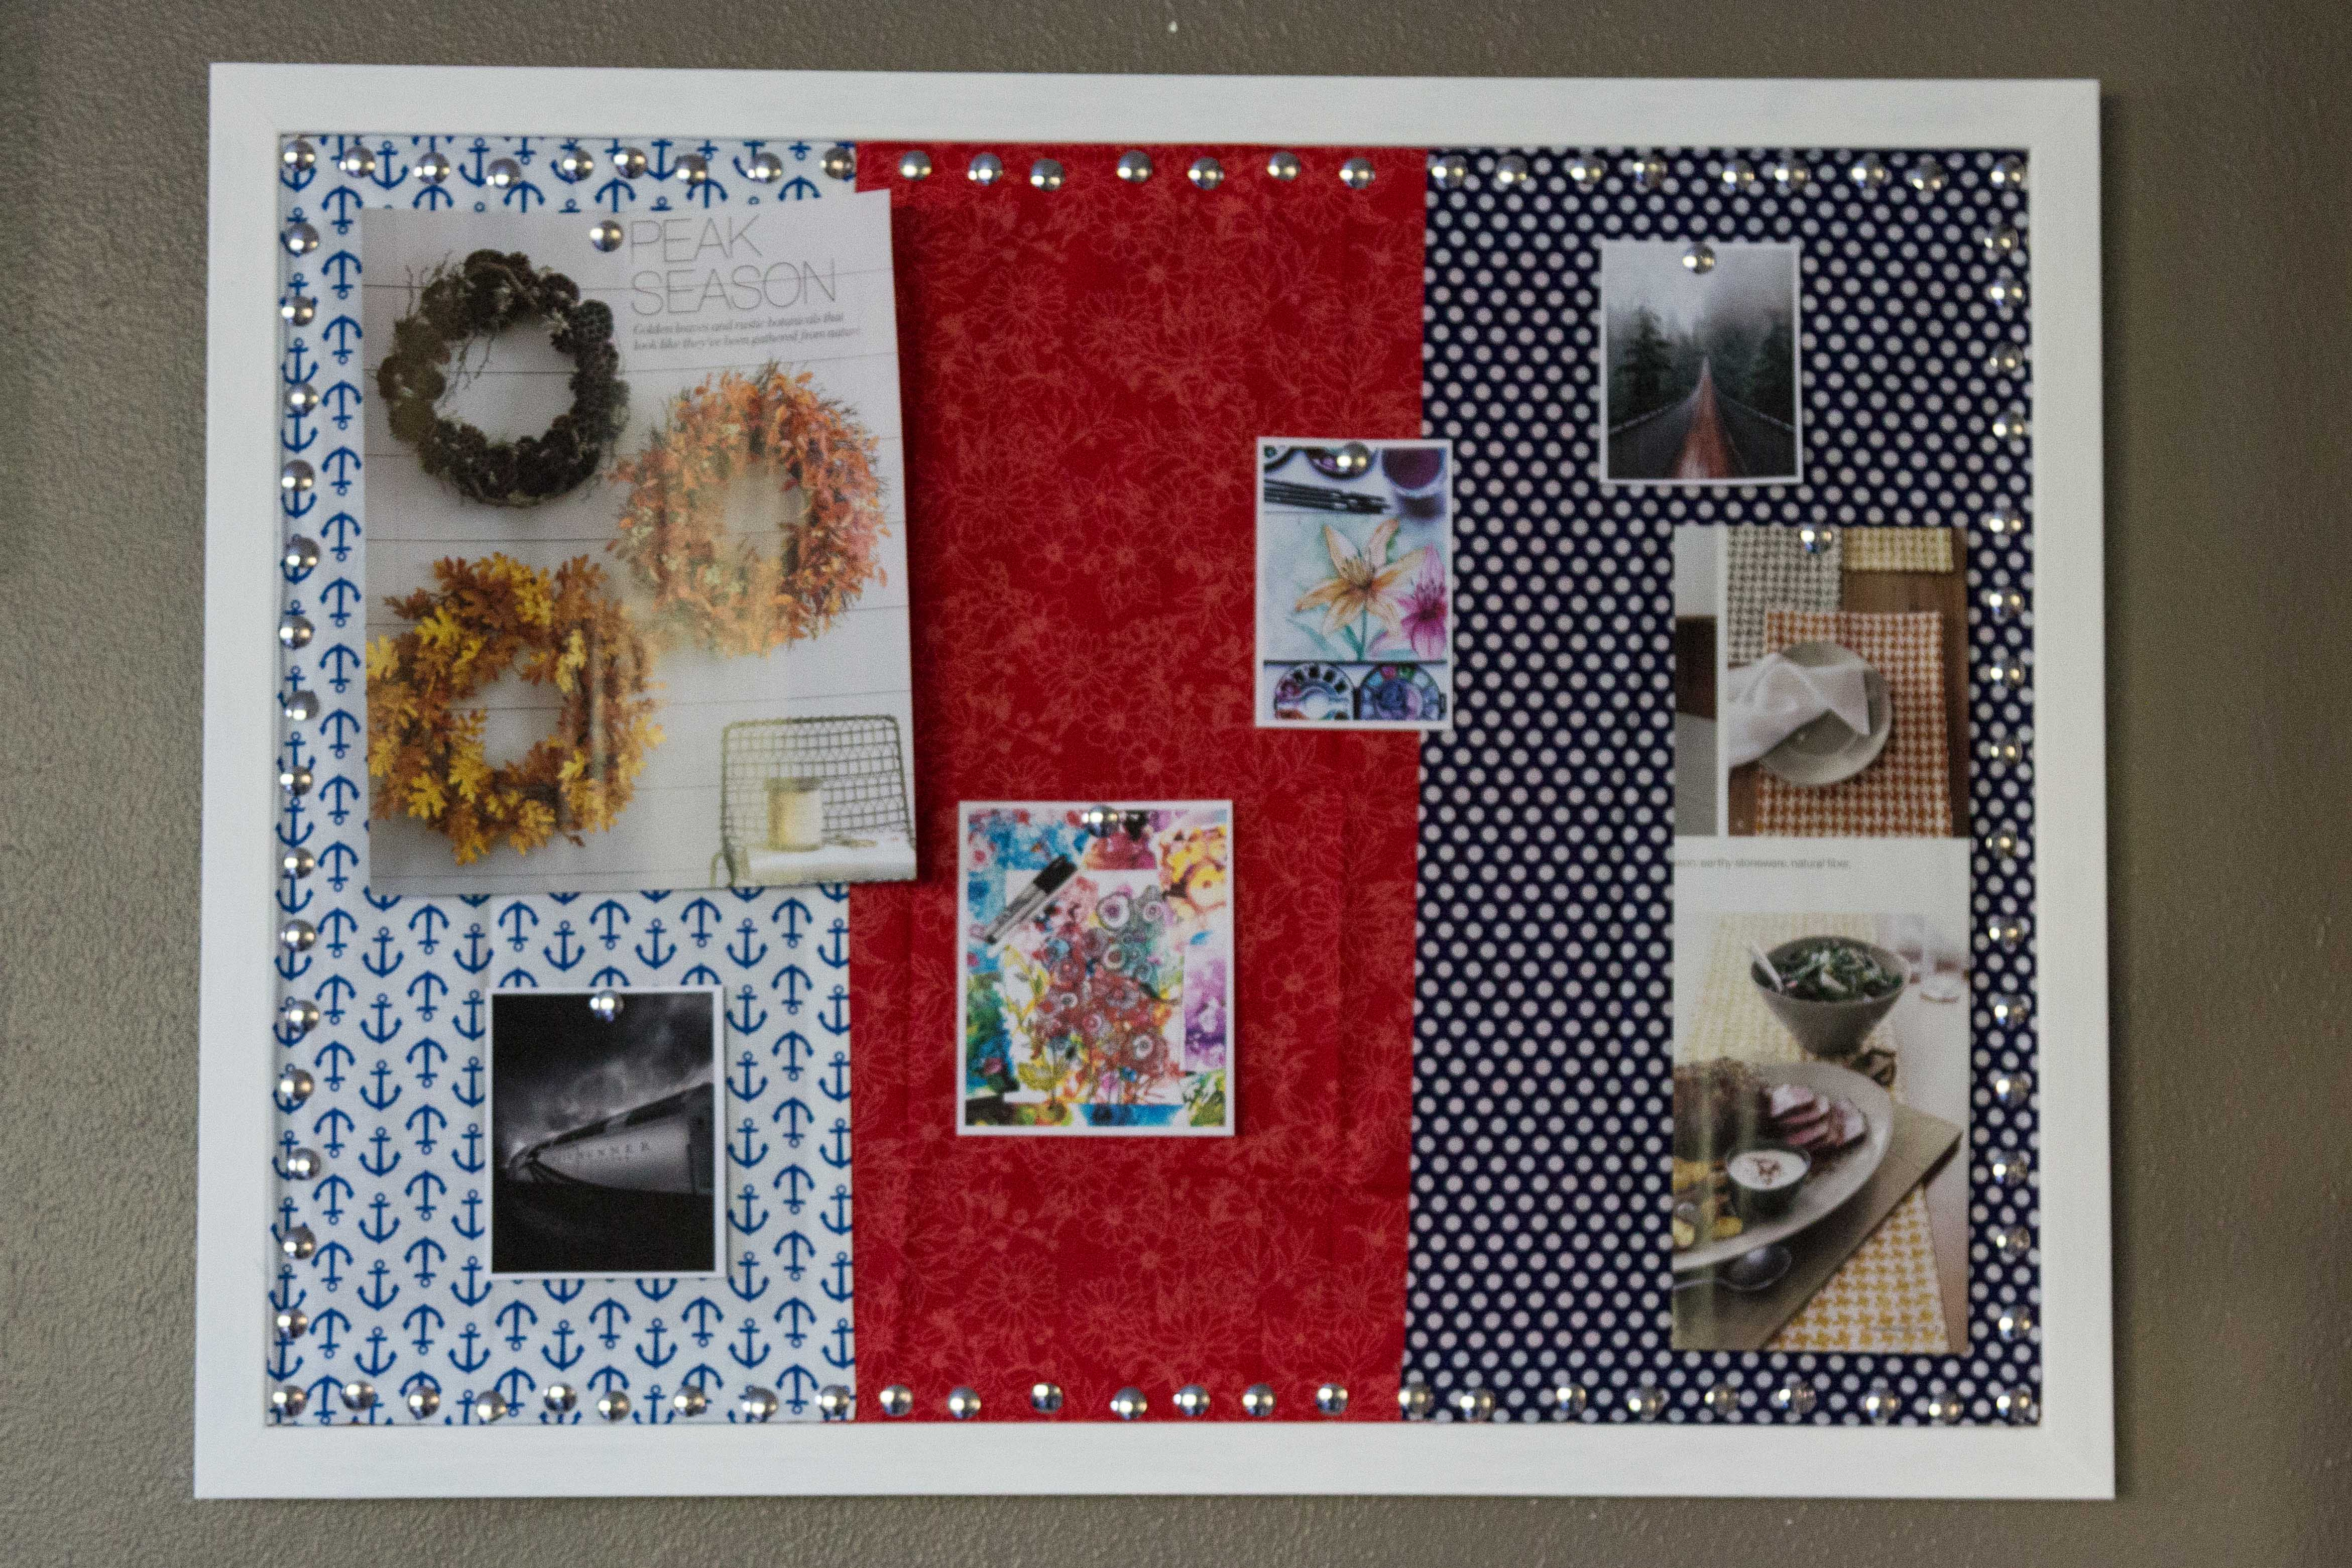 Diy stylish fabric covered inspiration cork board rose for Diy fabric bulletin board ideas